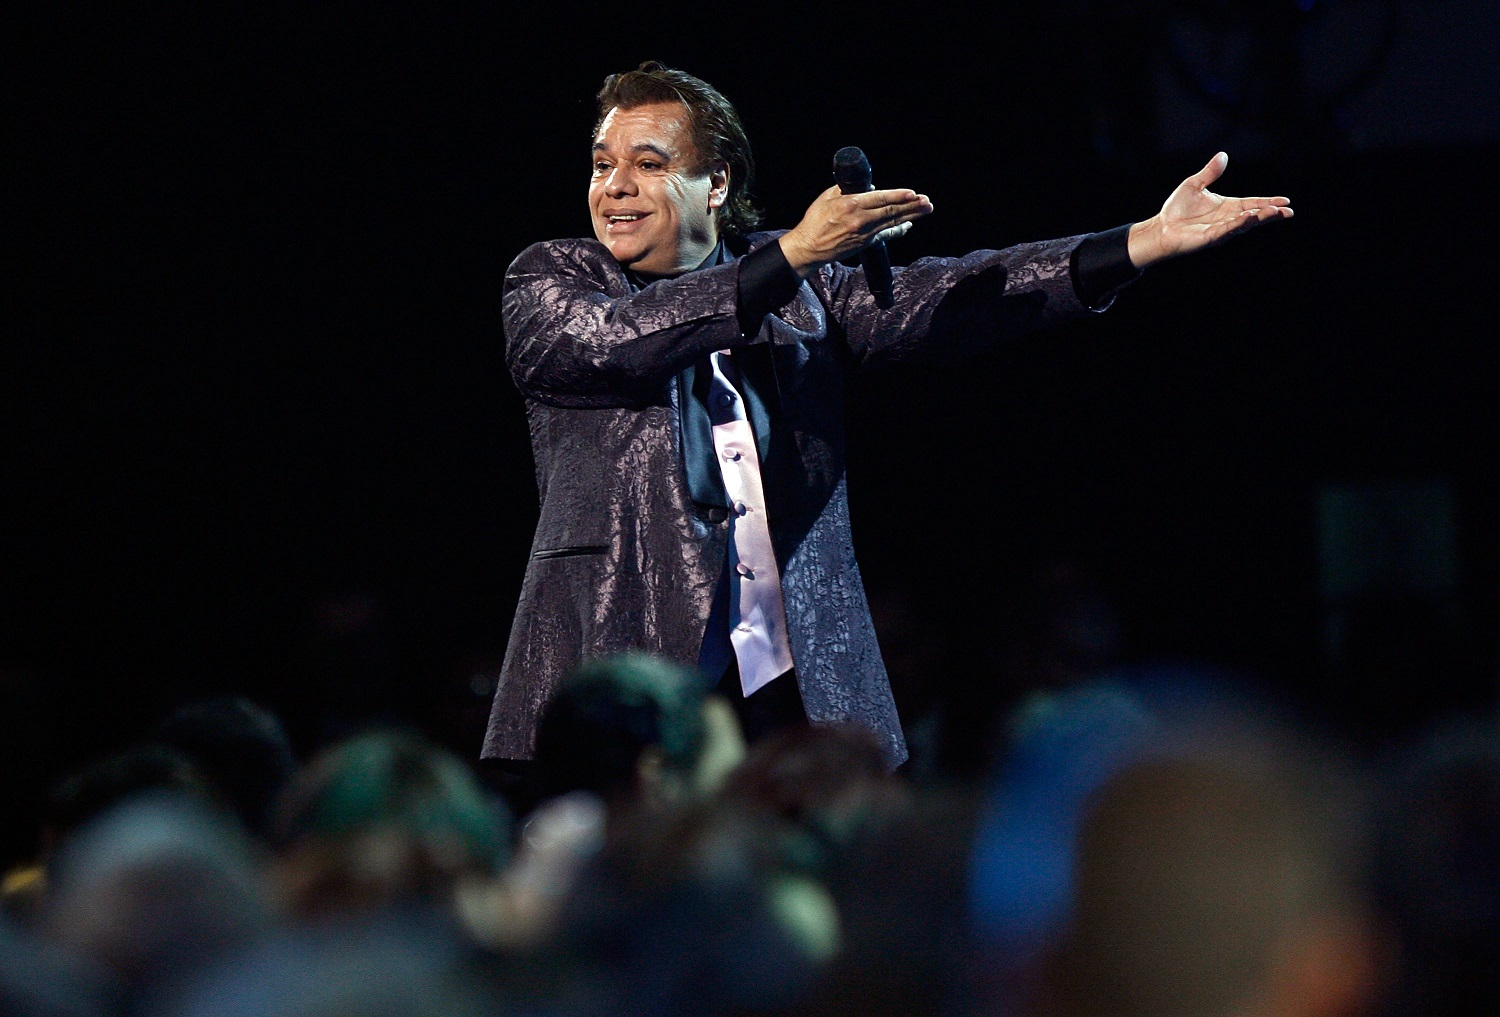 Reviven video de Juan Gabriel regándole licor a su público en pleno concierto